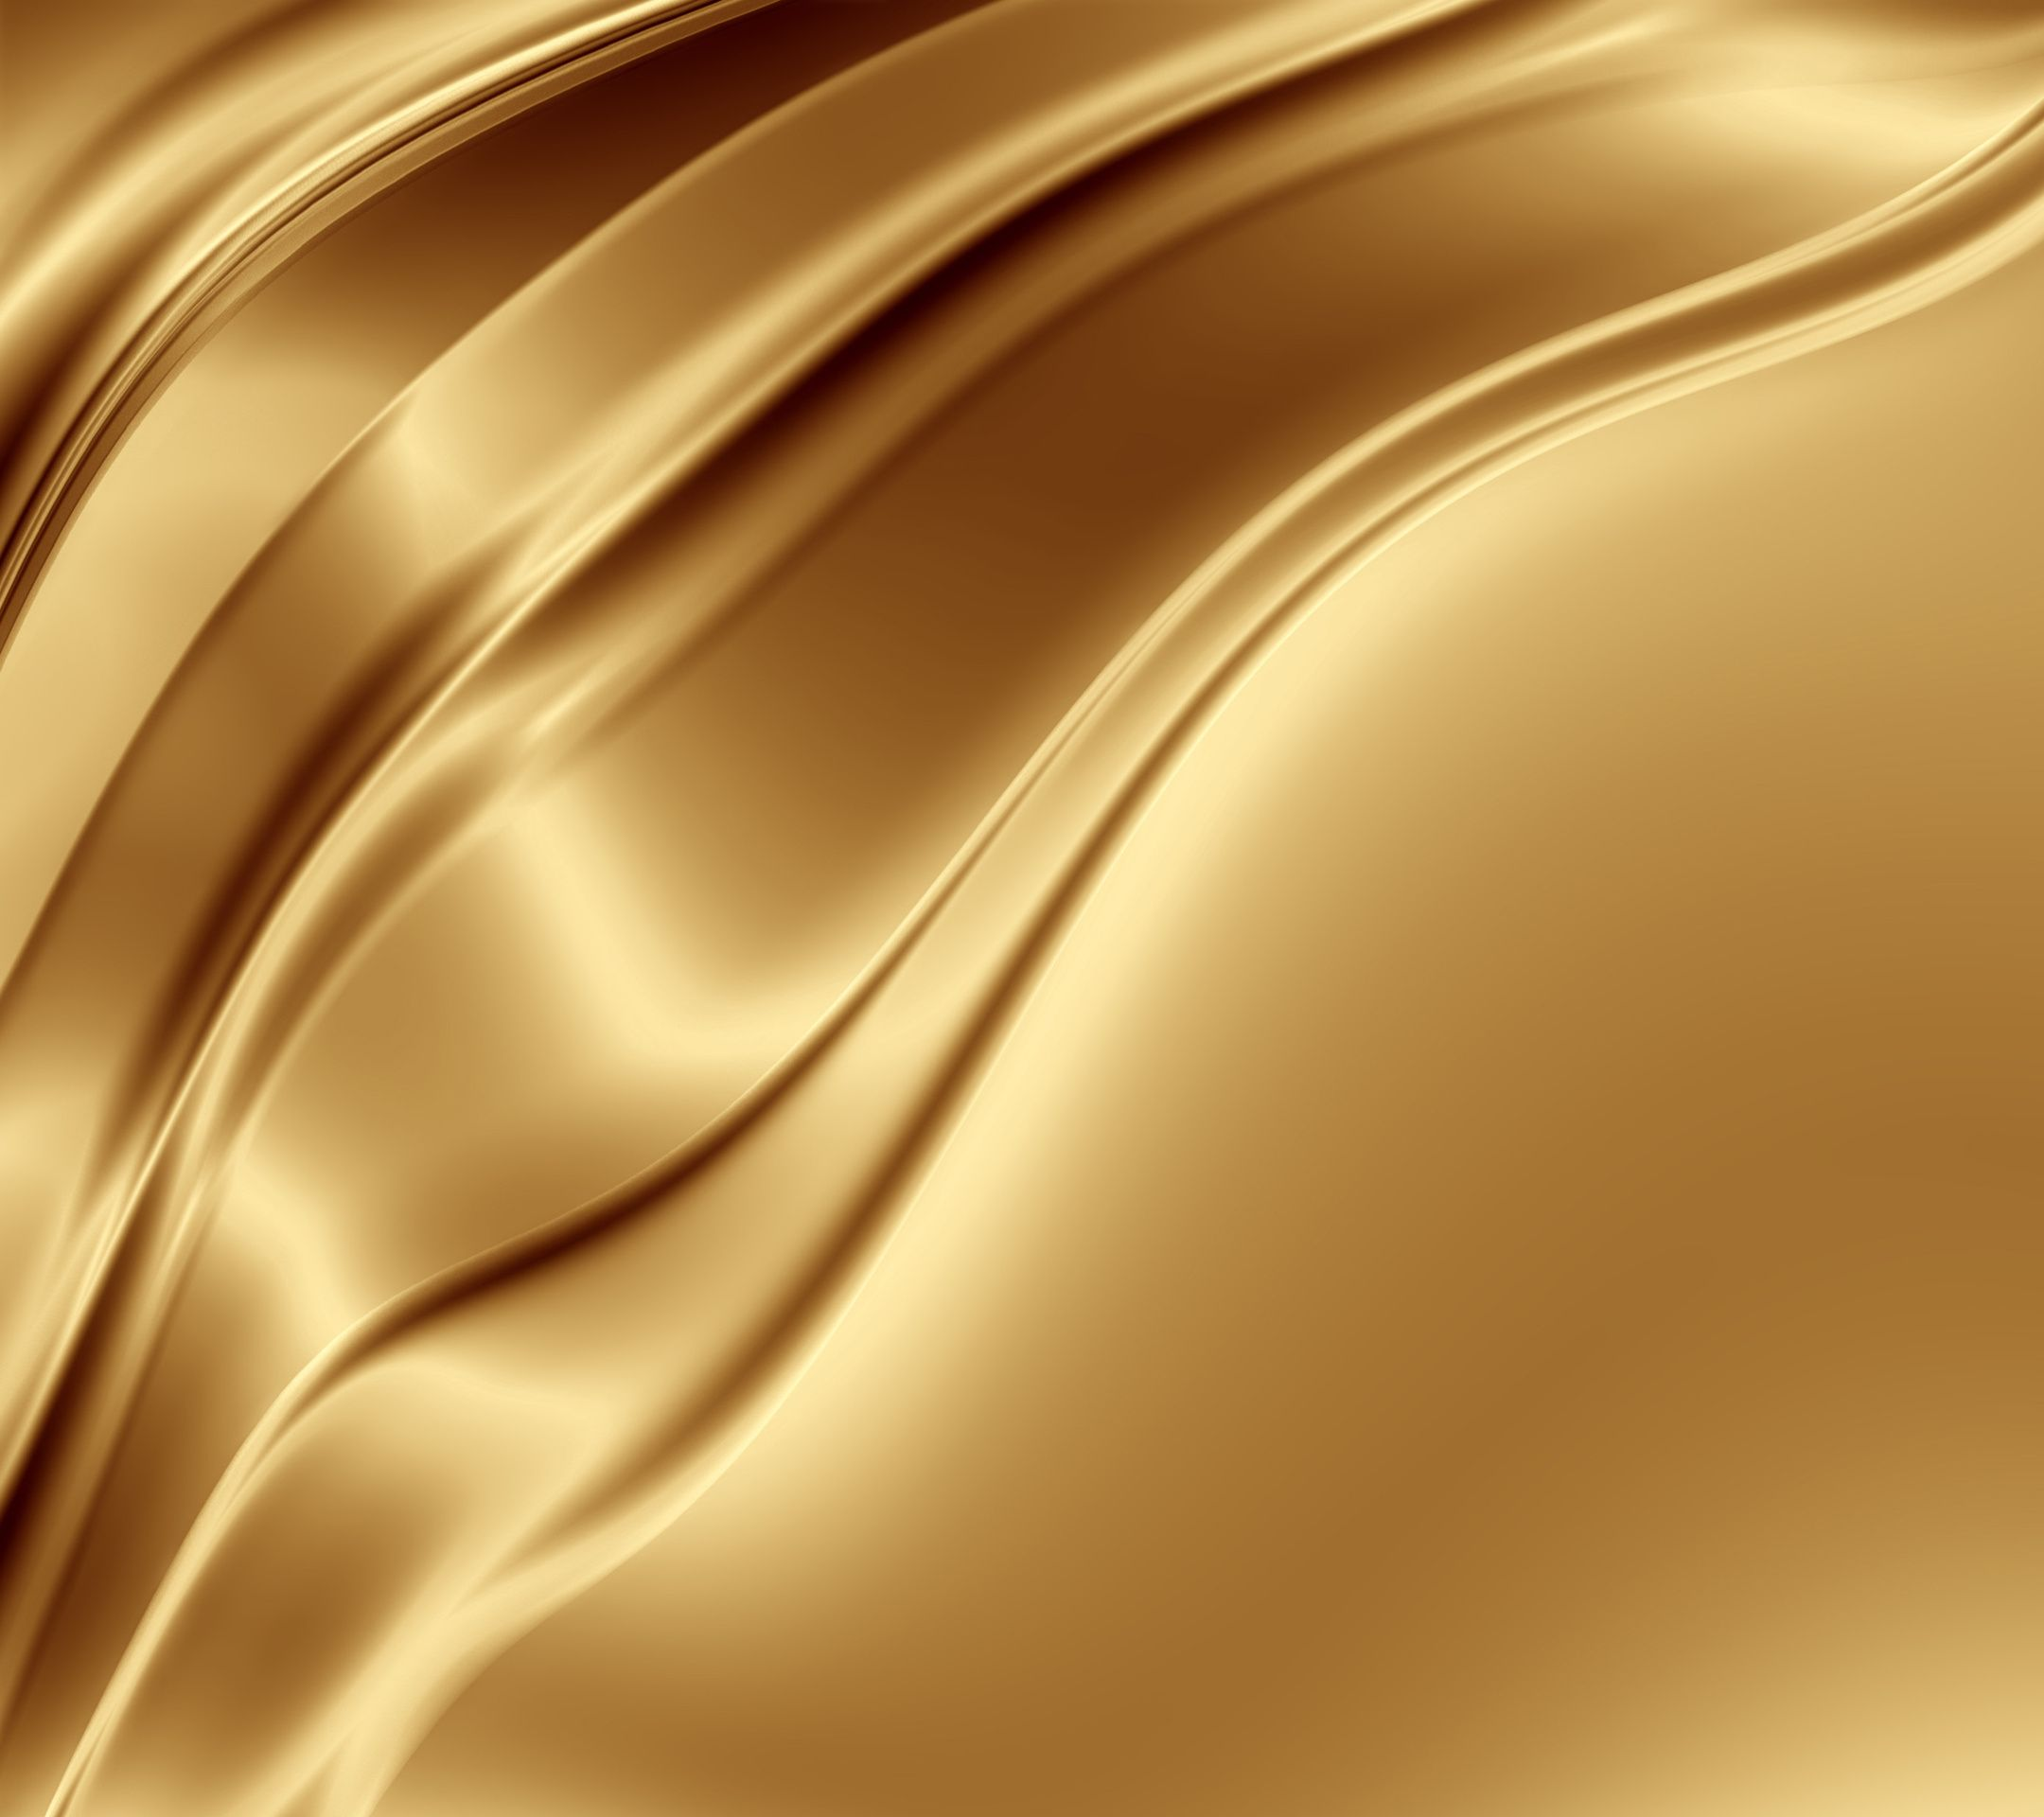 Pin By Galerie De Couleurs On Couleur D Or Android Wallpaper Bubbles Wallpaper Gold Wallpaper Iphone